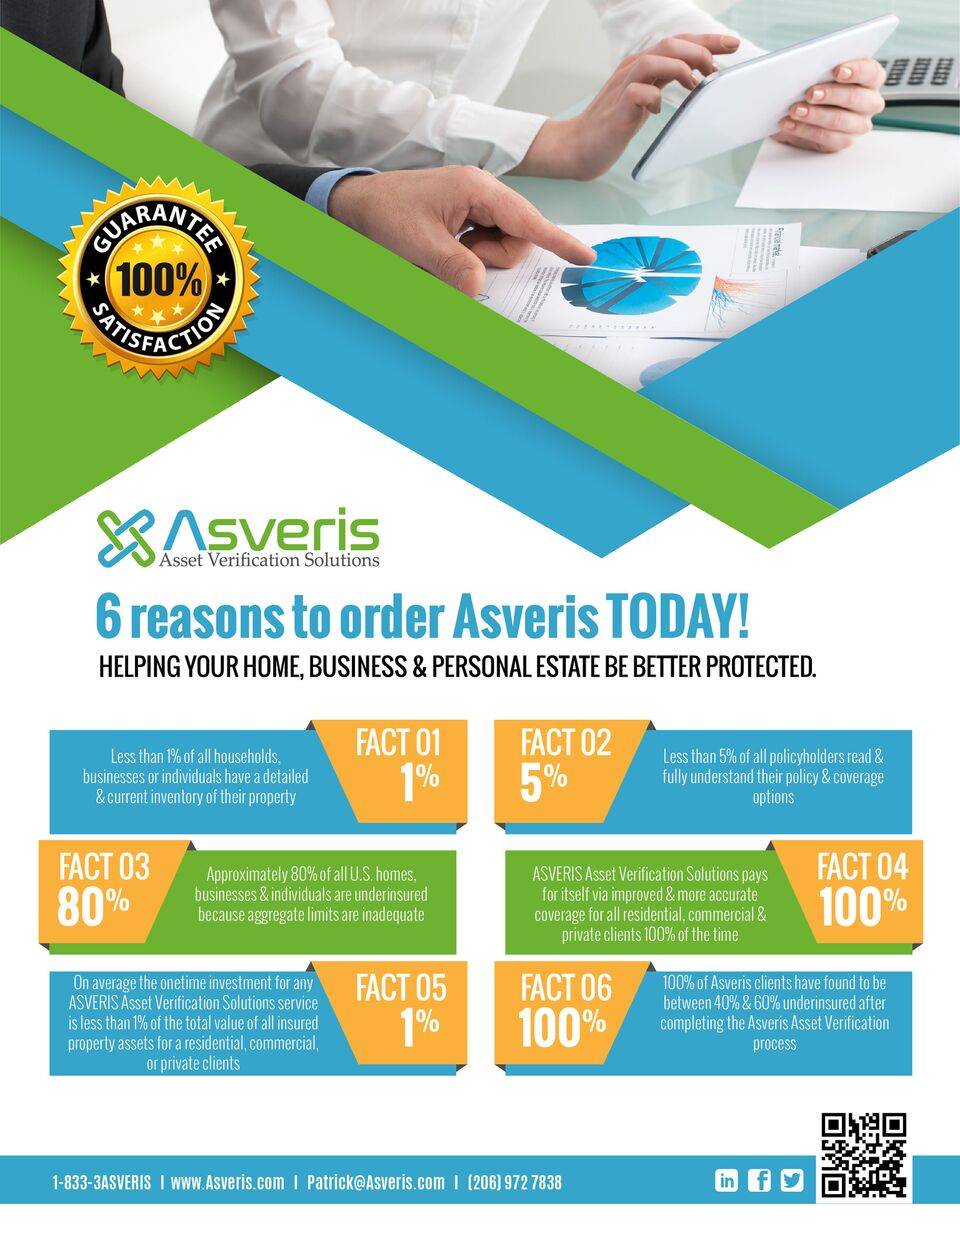 6 reasons to order Asveris TODAY-01_preview.jpeg